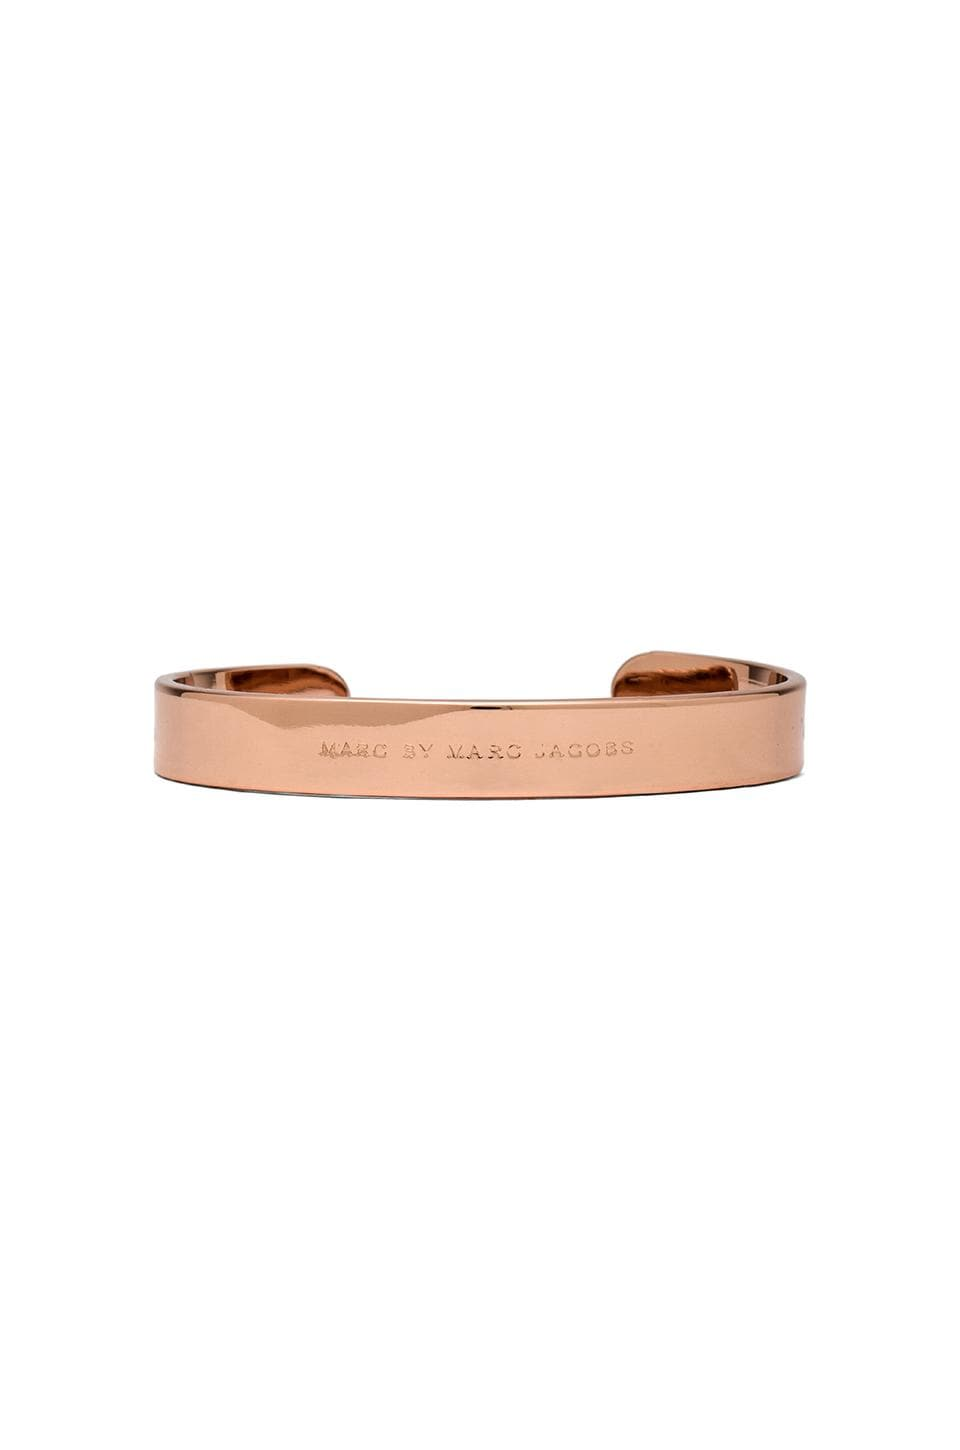 Marc by Marc Jacobs Screw It Metal Screw Cuff in Rose Gold